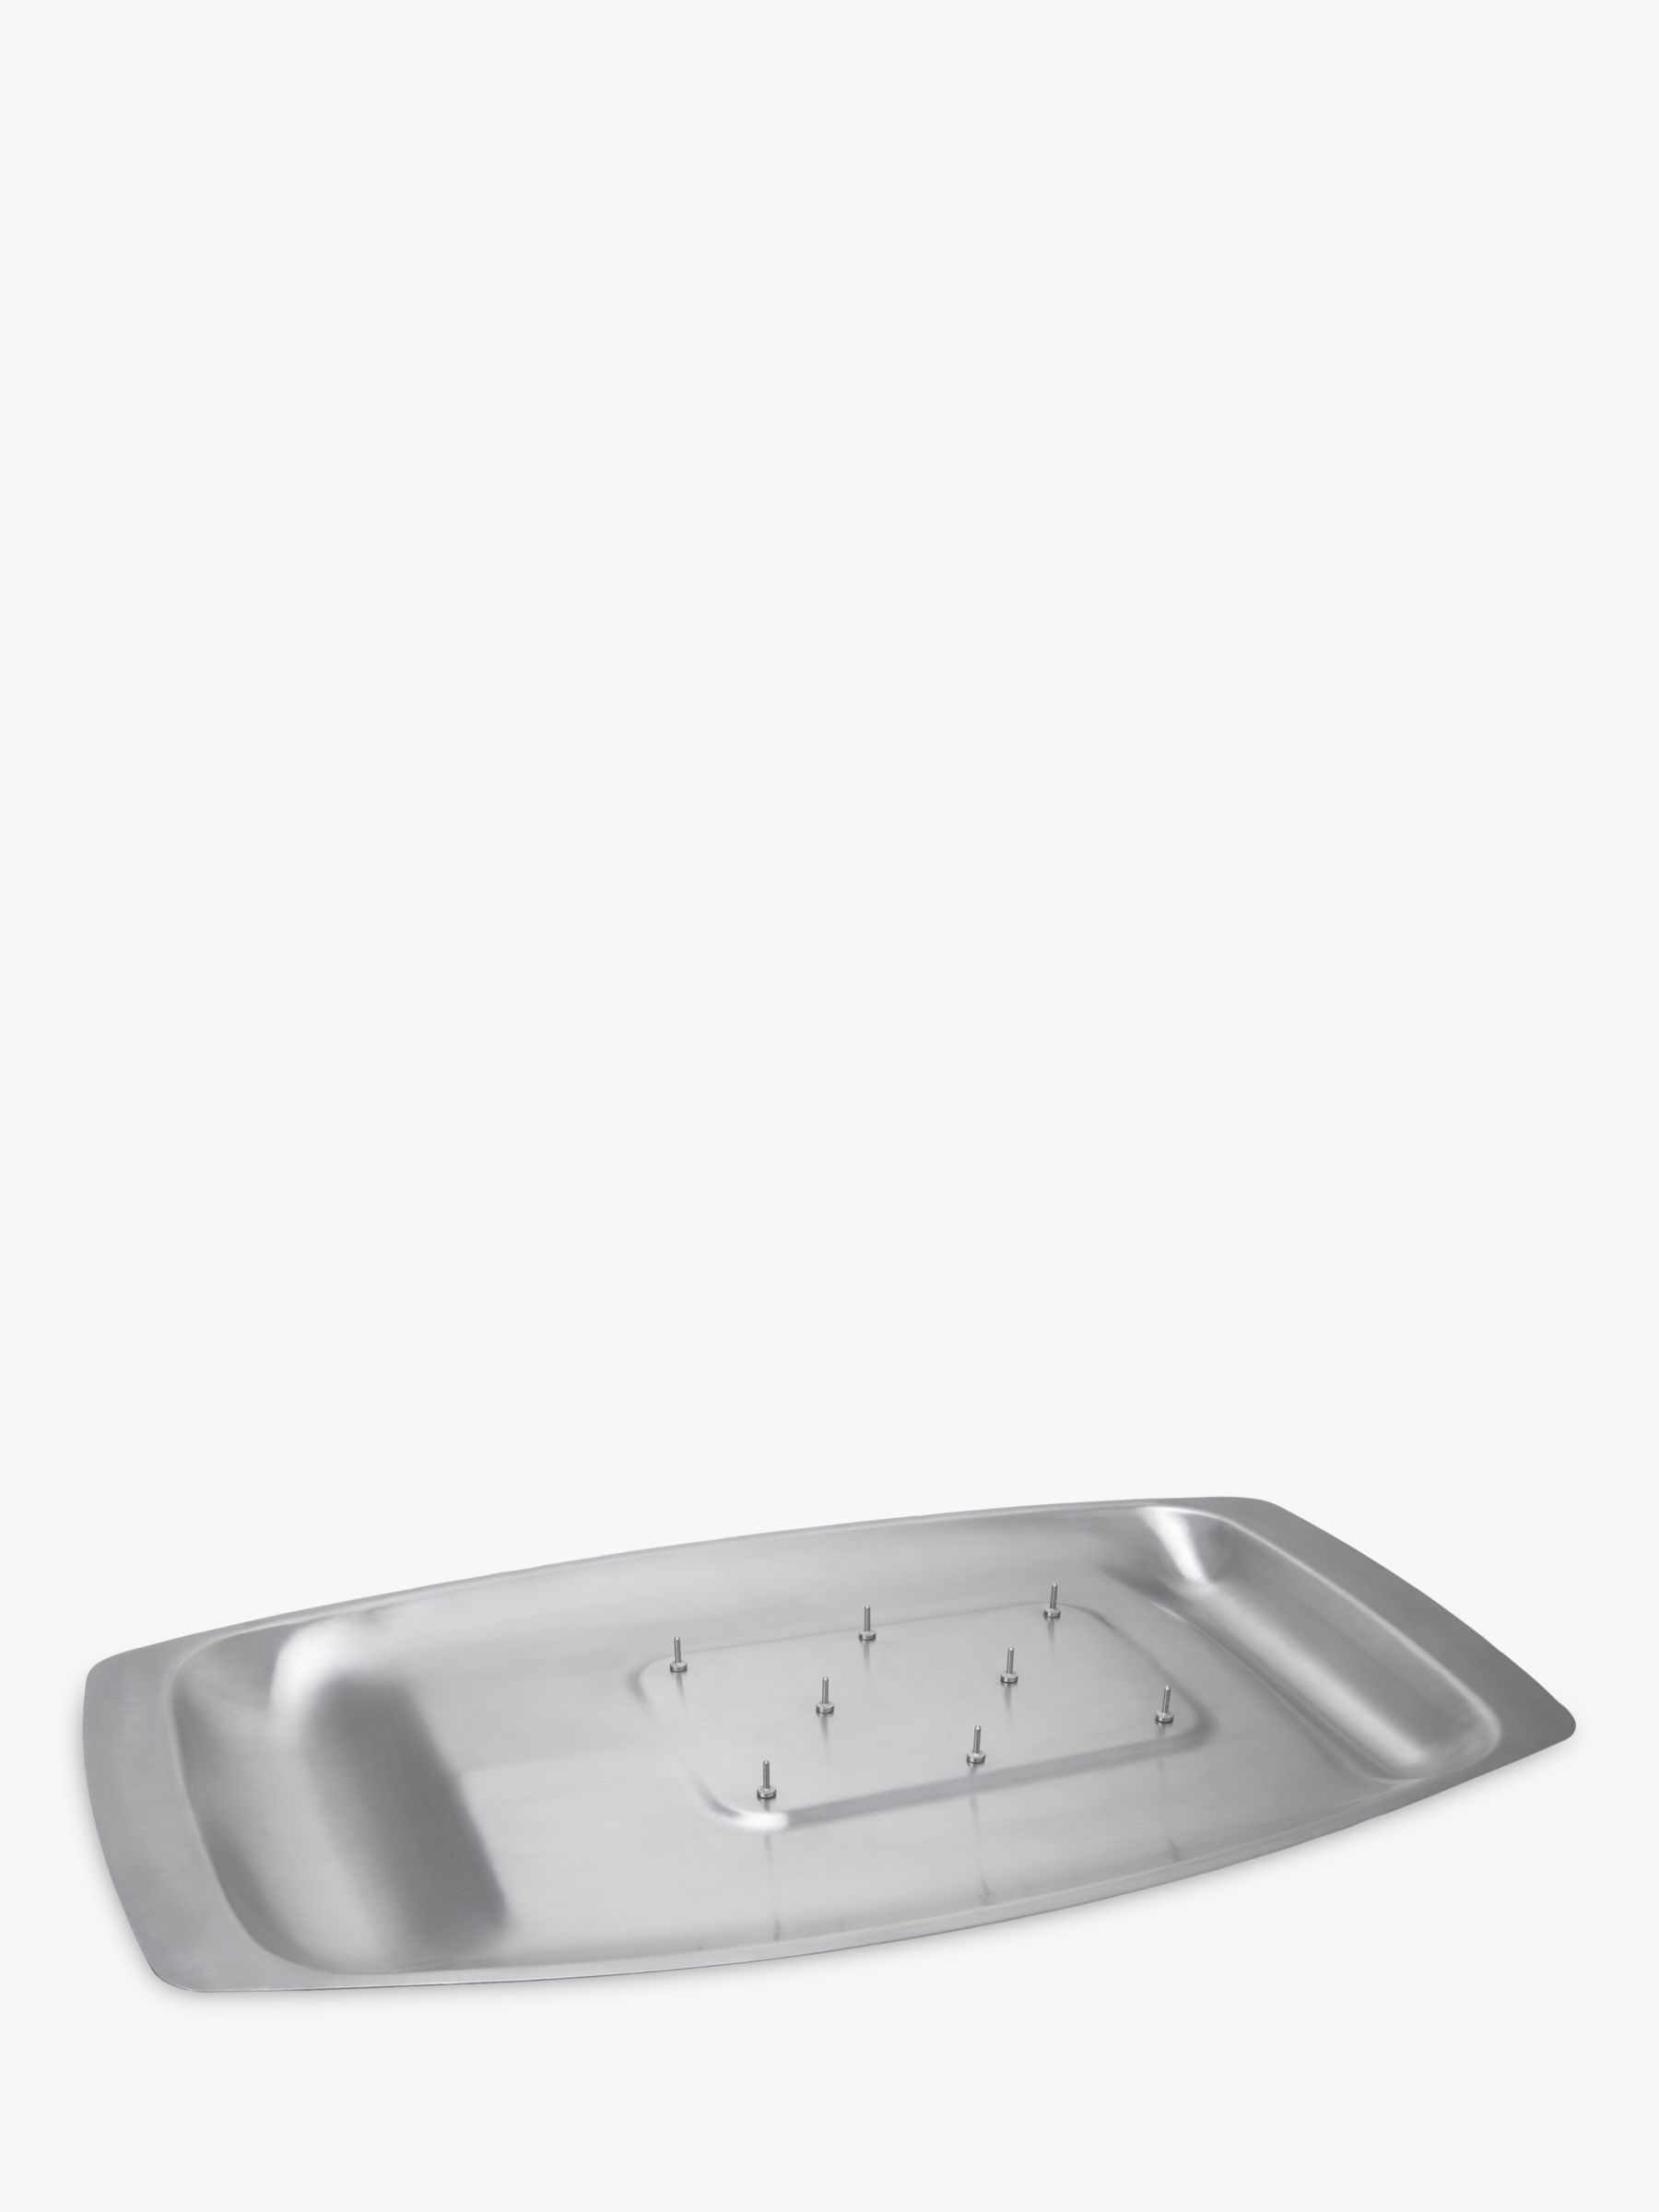 John Lewis Carving Tray, Large